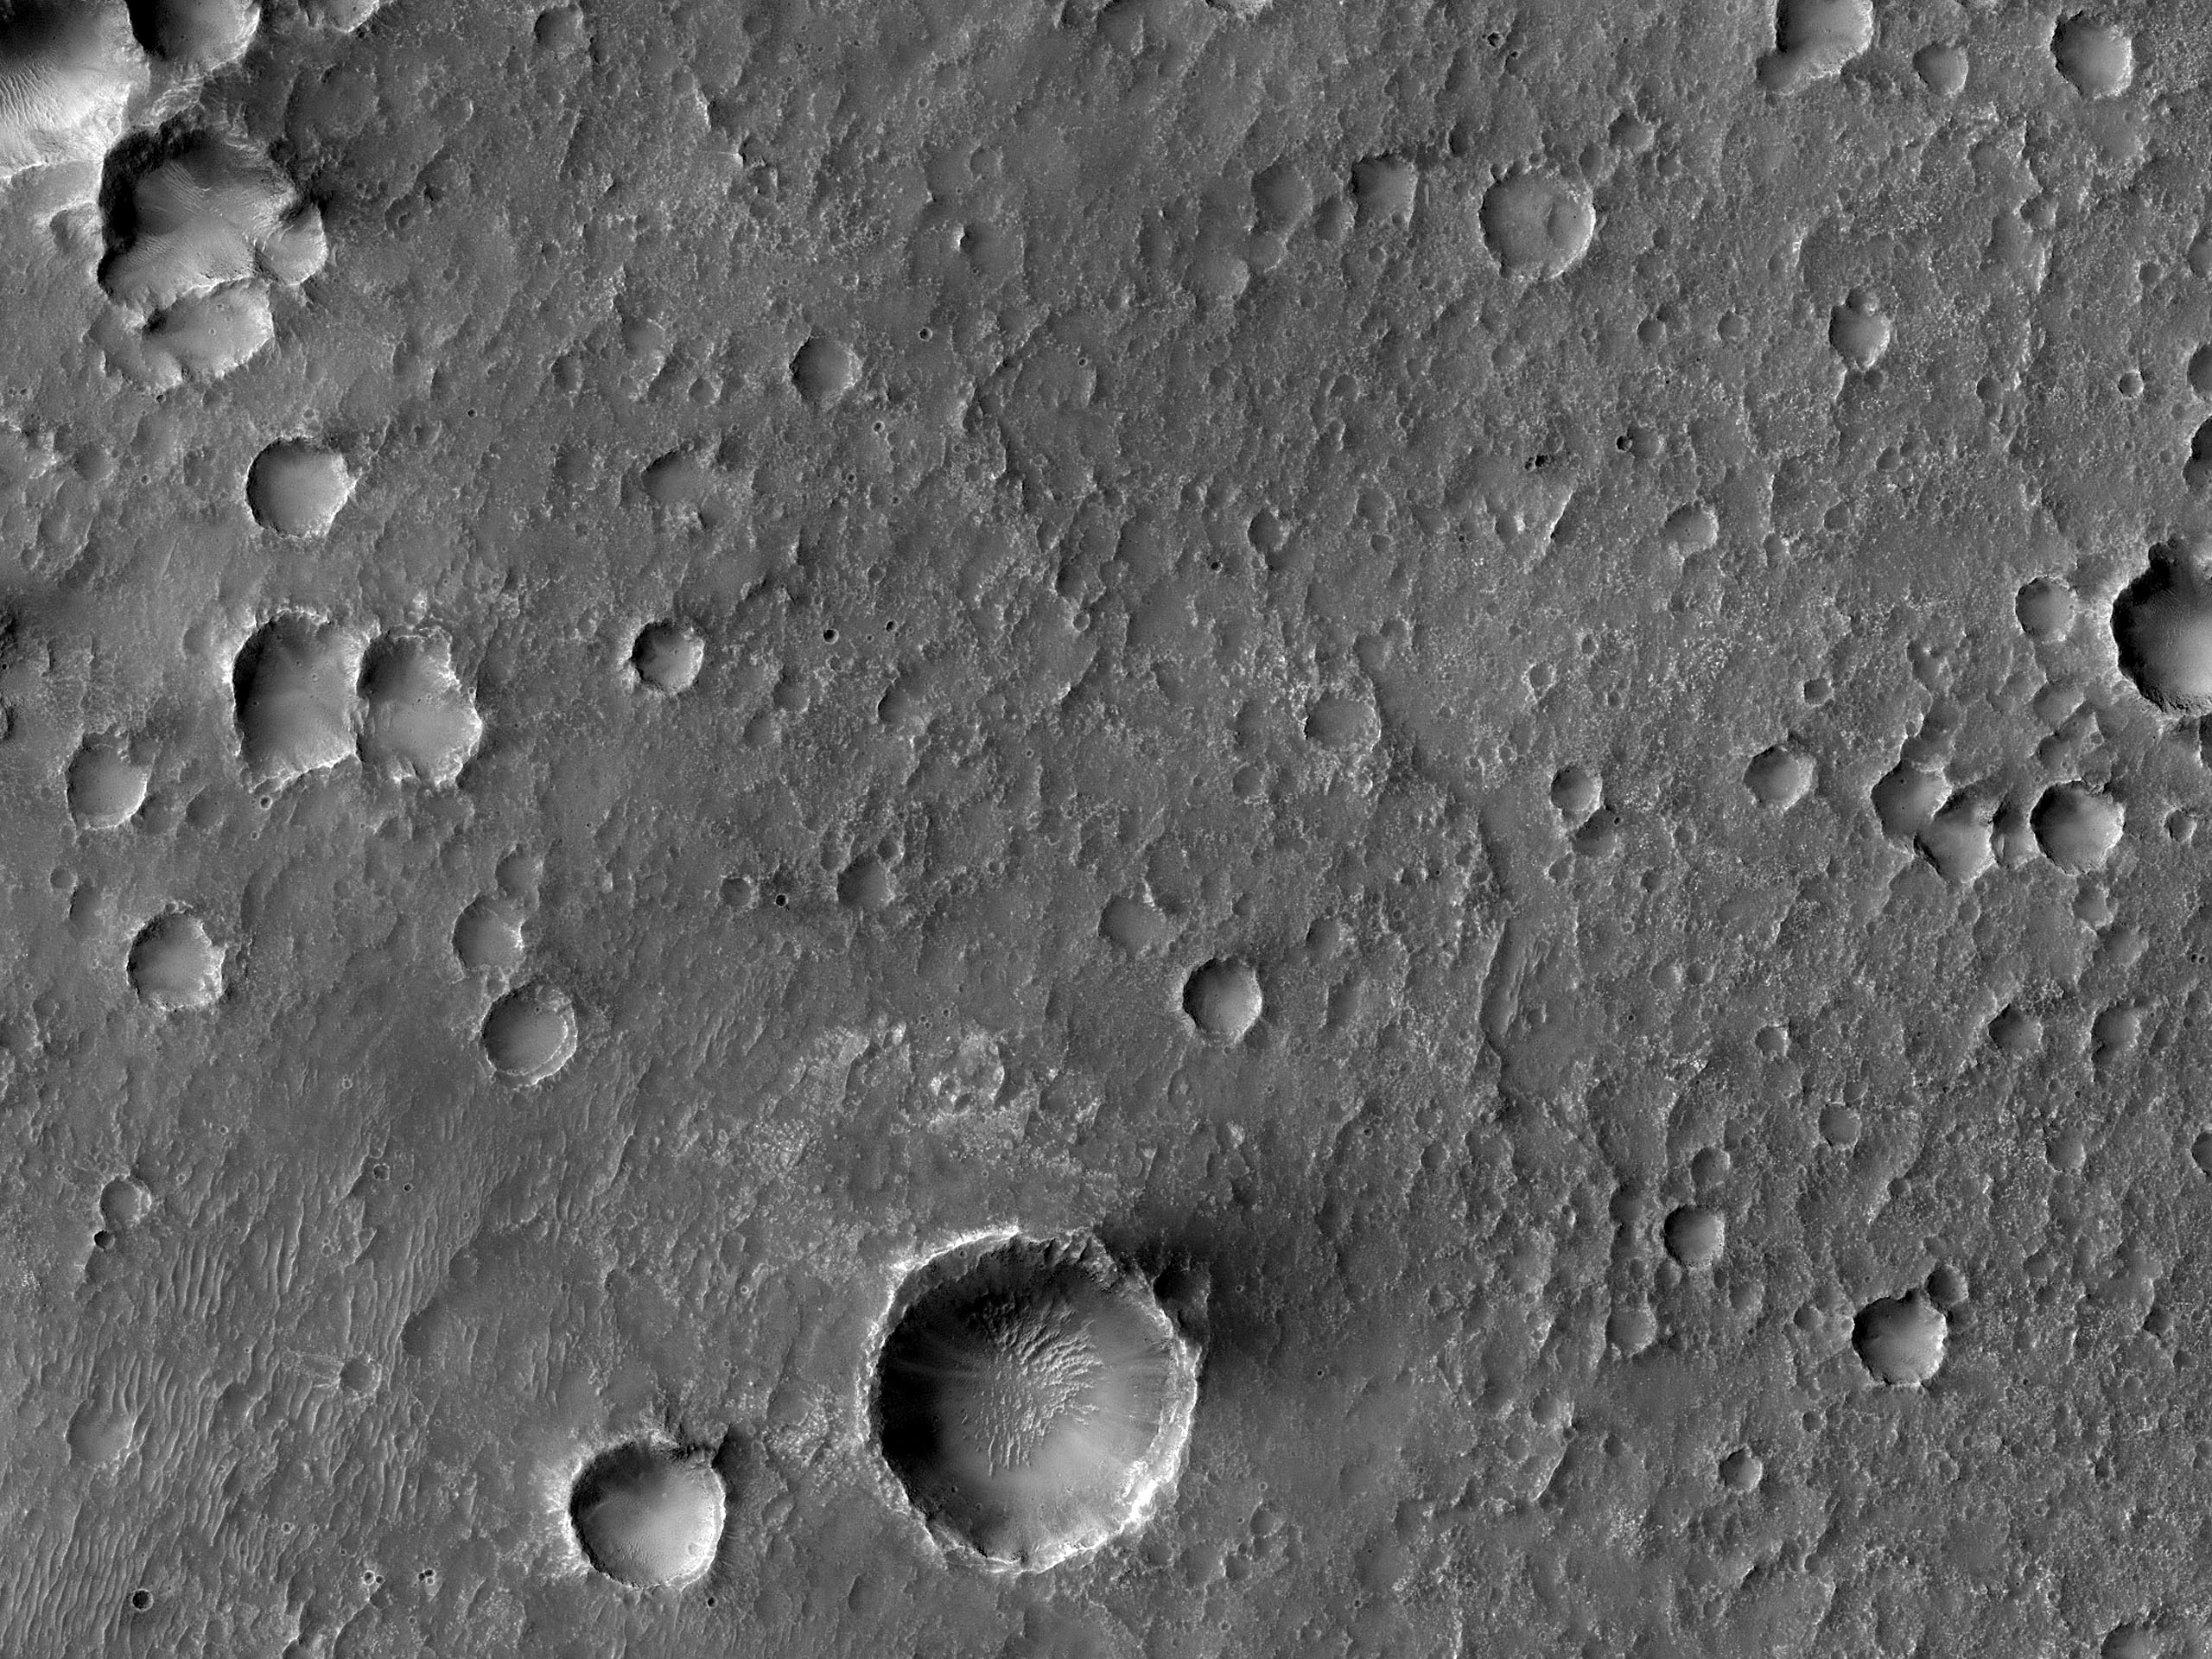 Chlorides and Craters